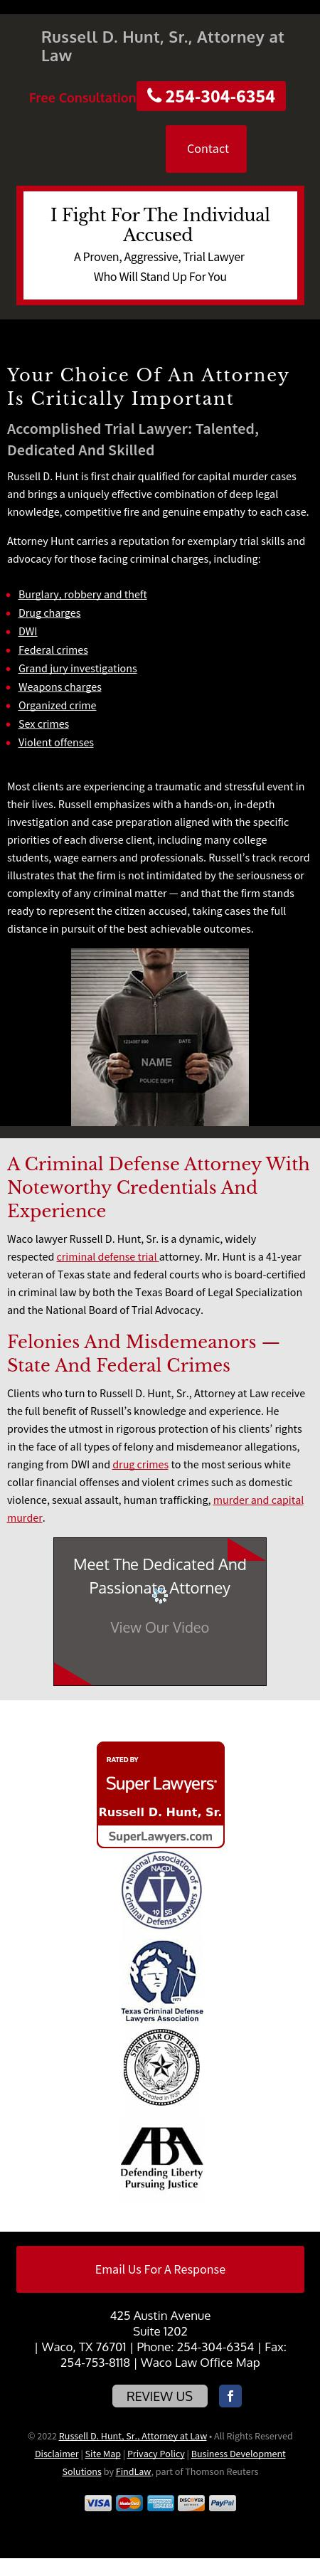 Hunt & Tuegel PLLC - Waco TX Lawyers